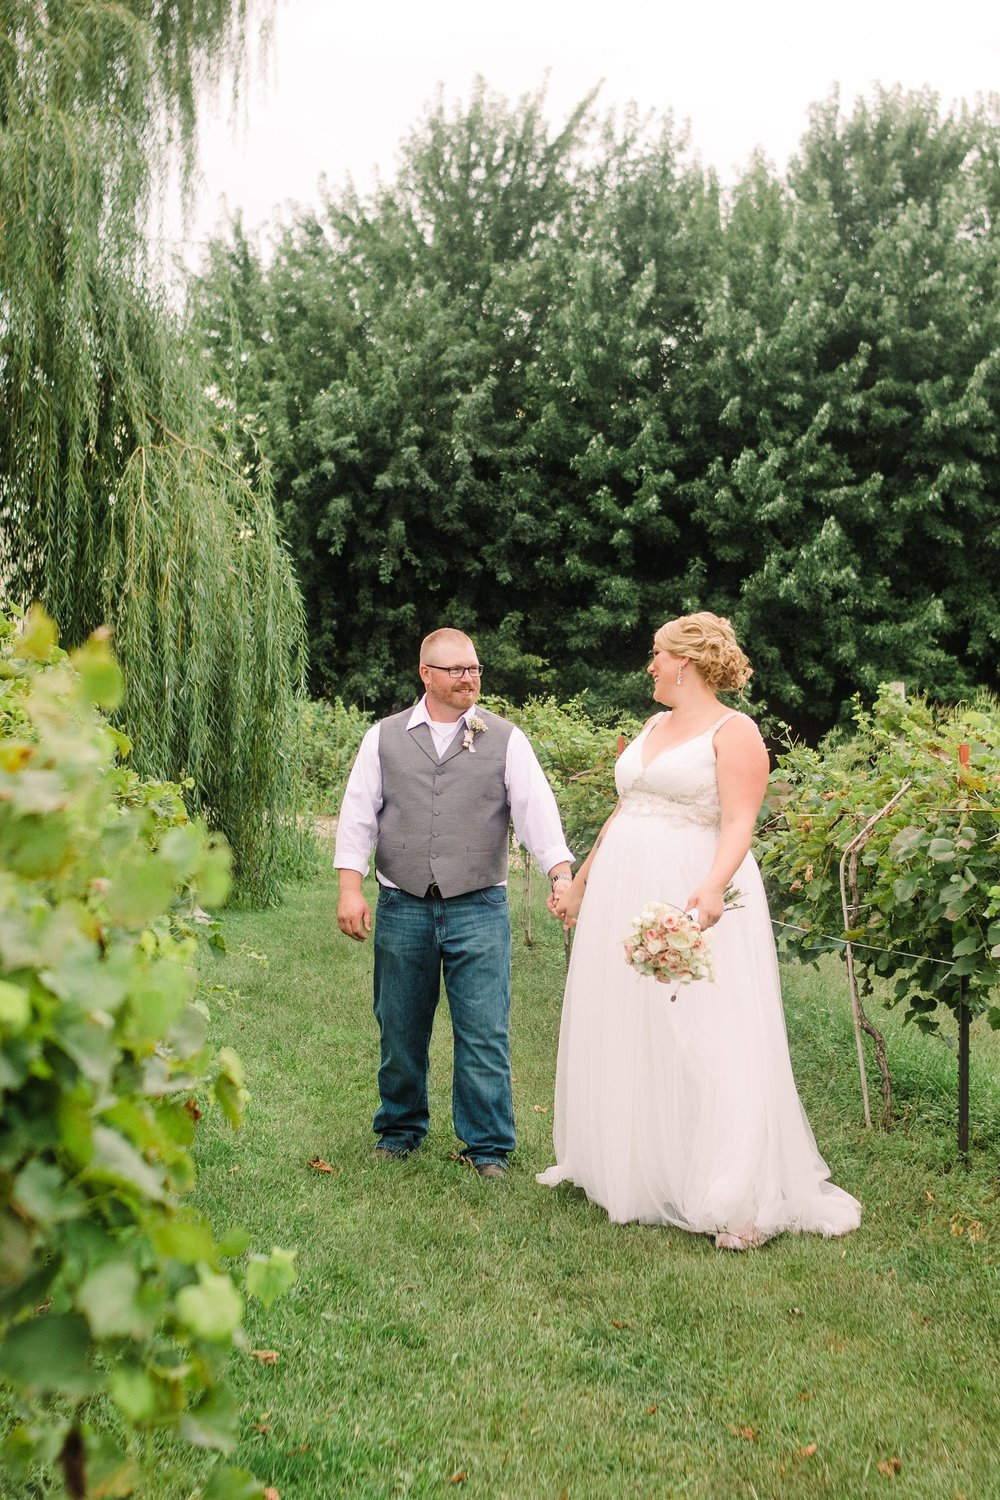 Wedding-Photography_river valley orchard and winery-humboldt-Iowa_walking in vineyard-iowa+wedding+photographer.jpeg